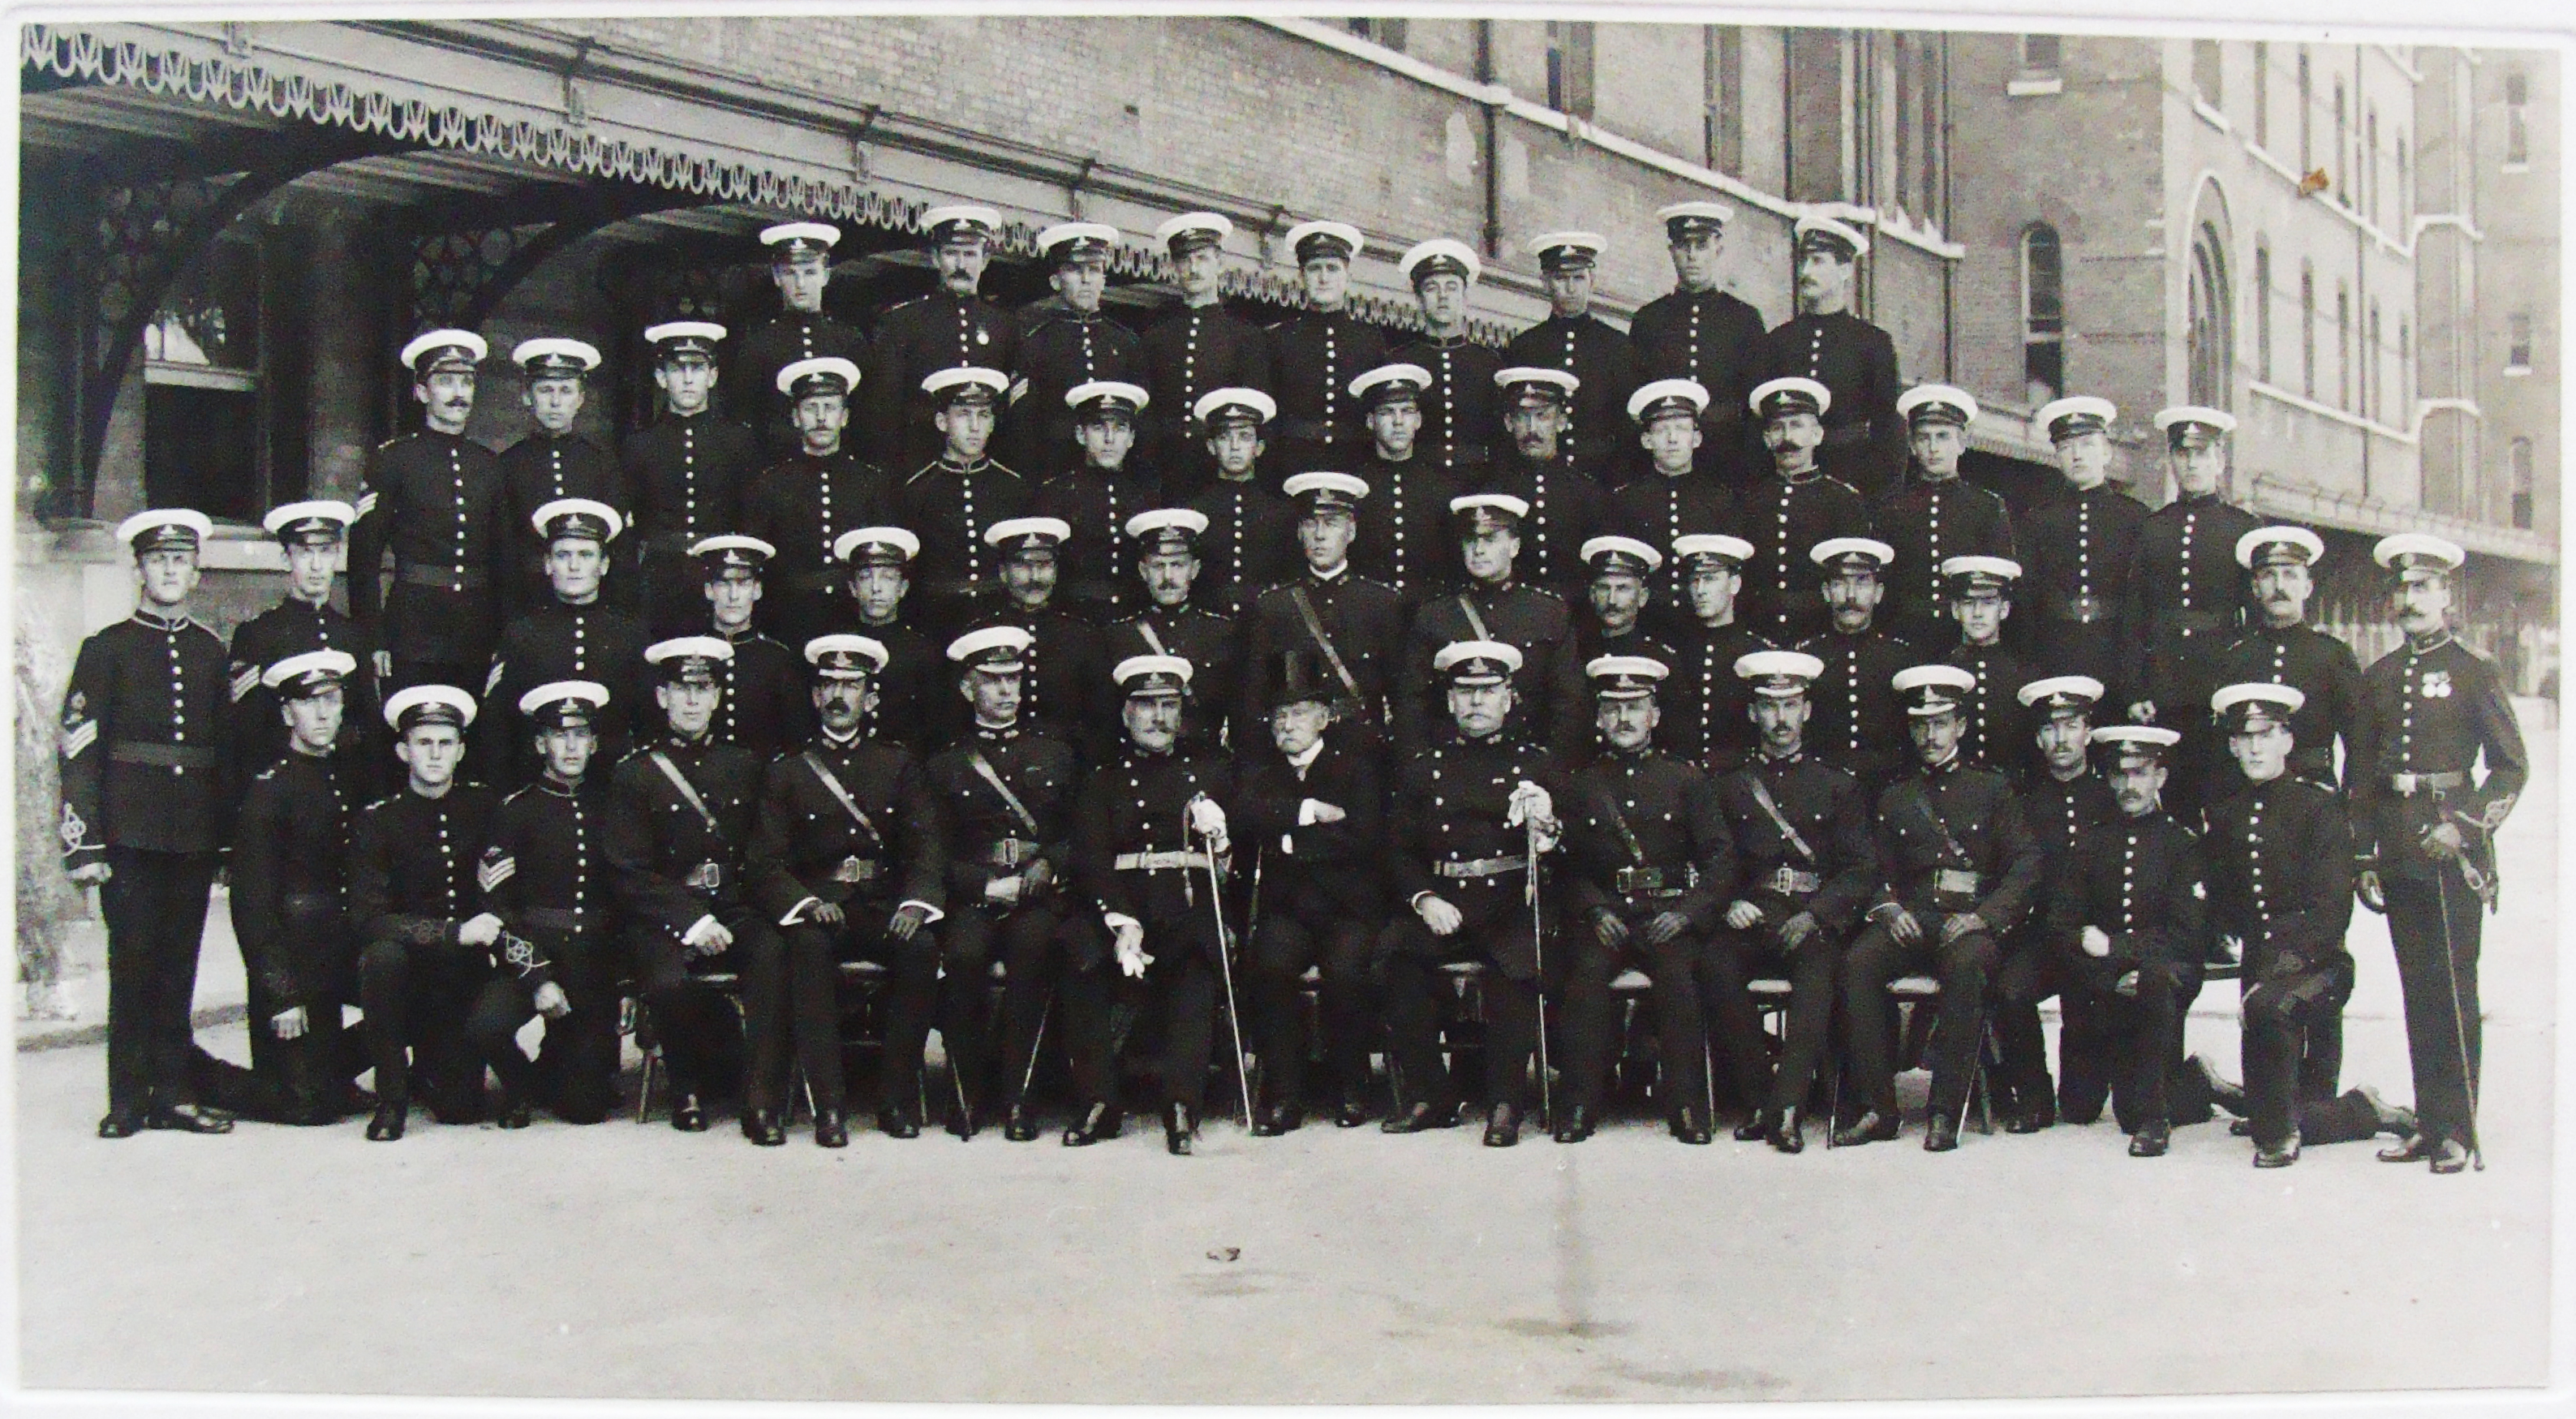 Canadian Heavy Artillery Team in Dress Uniforms